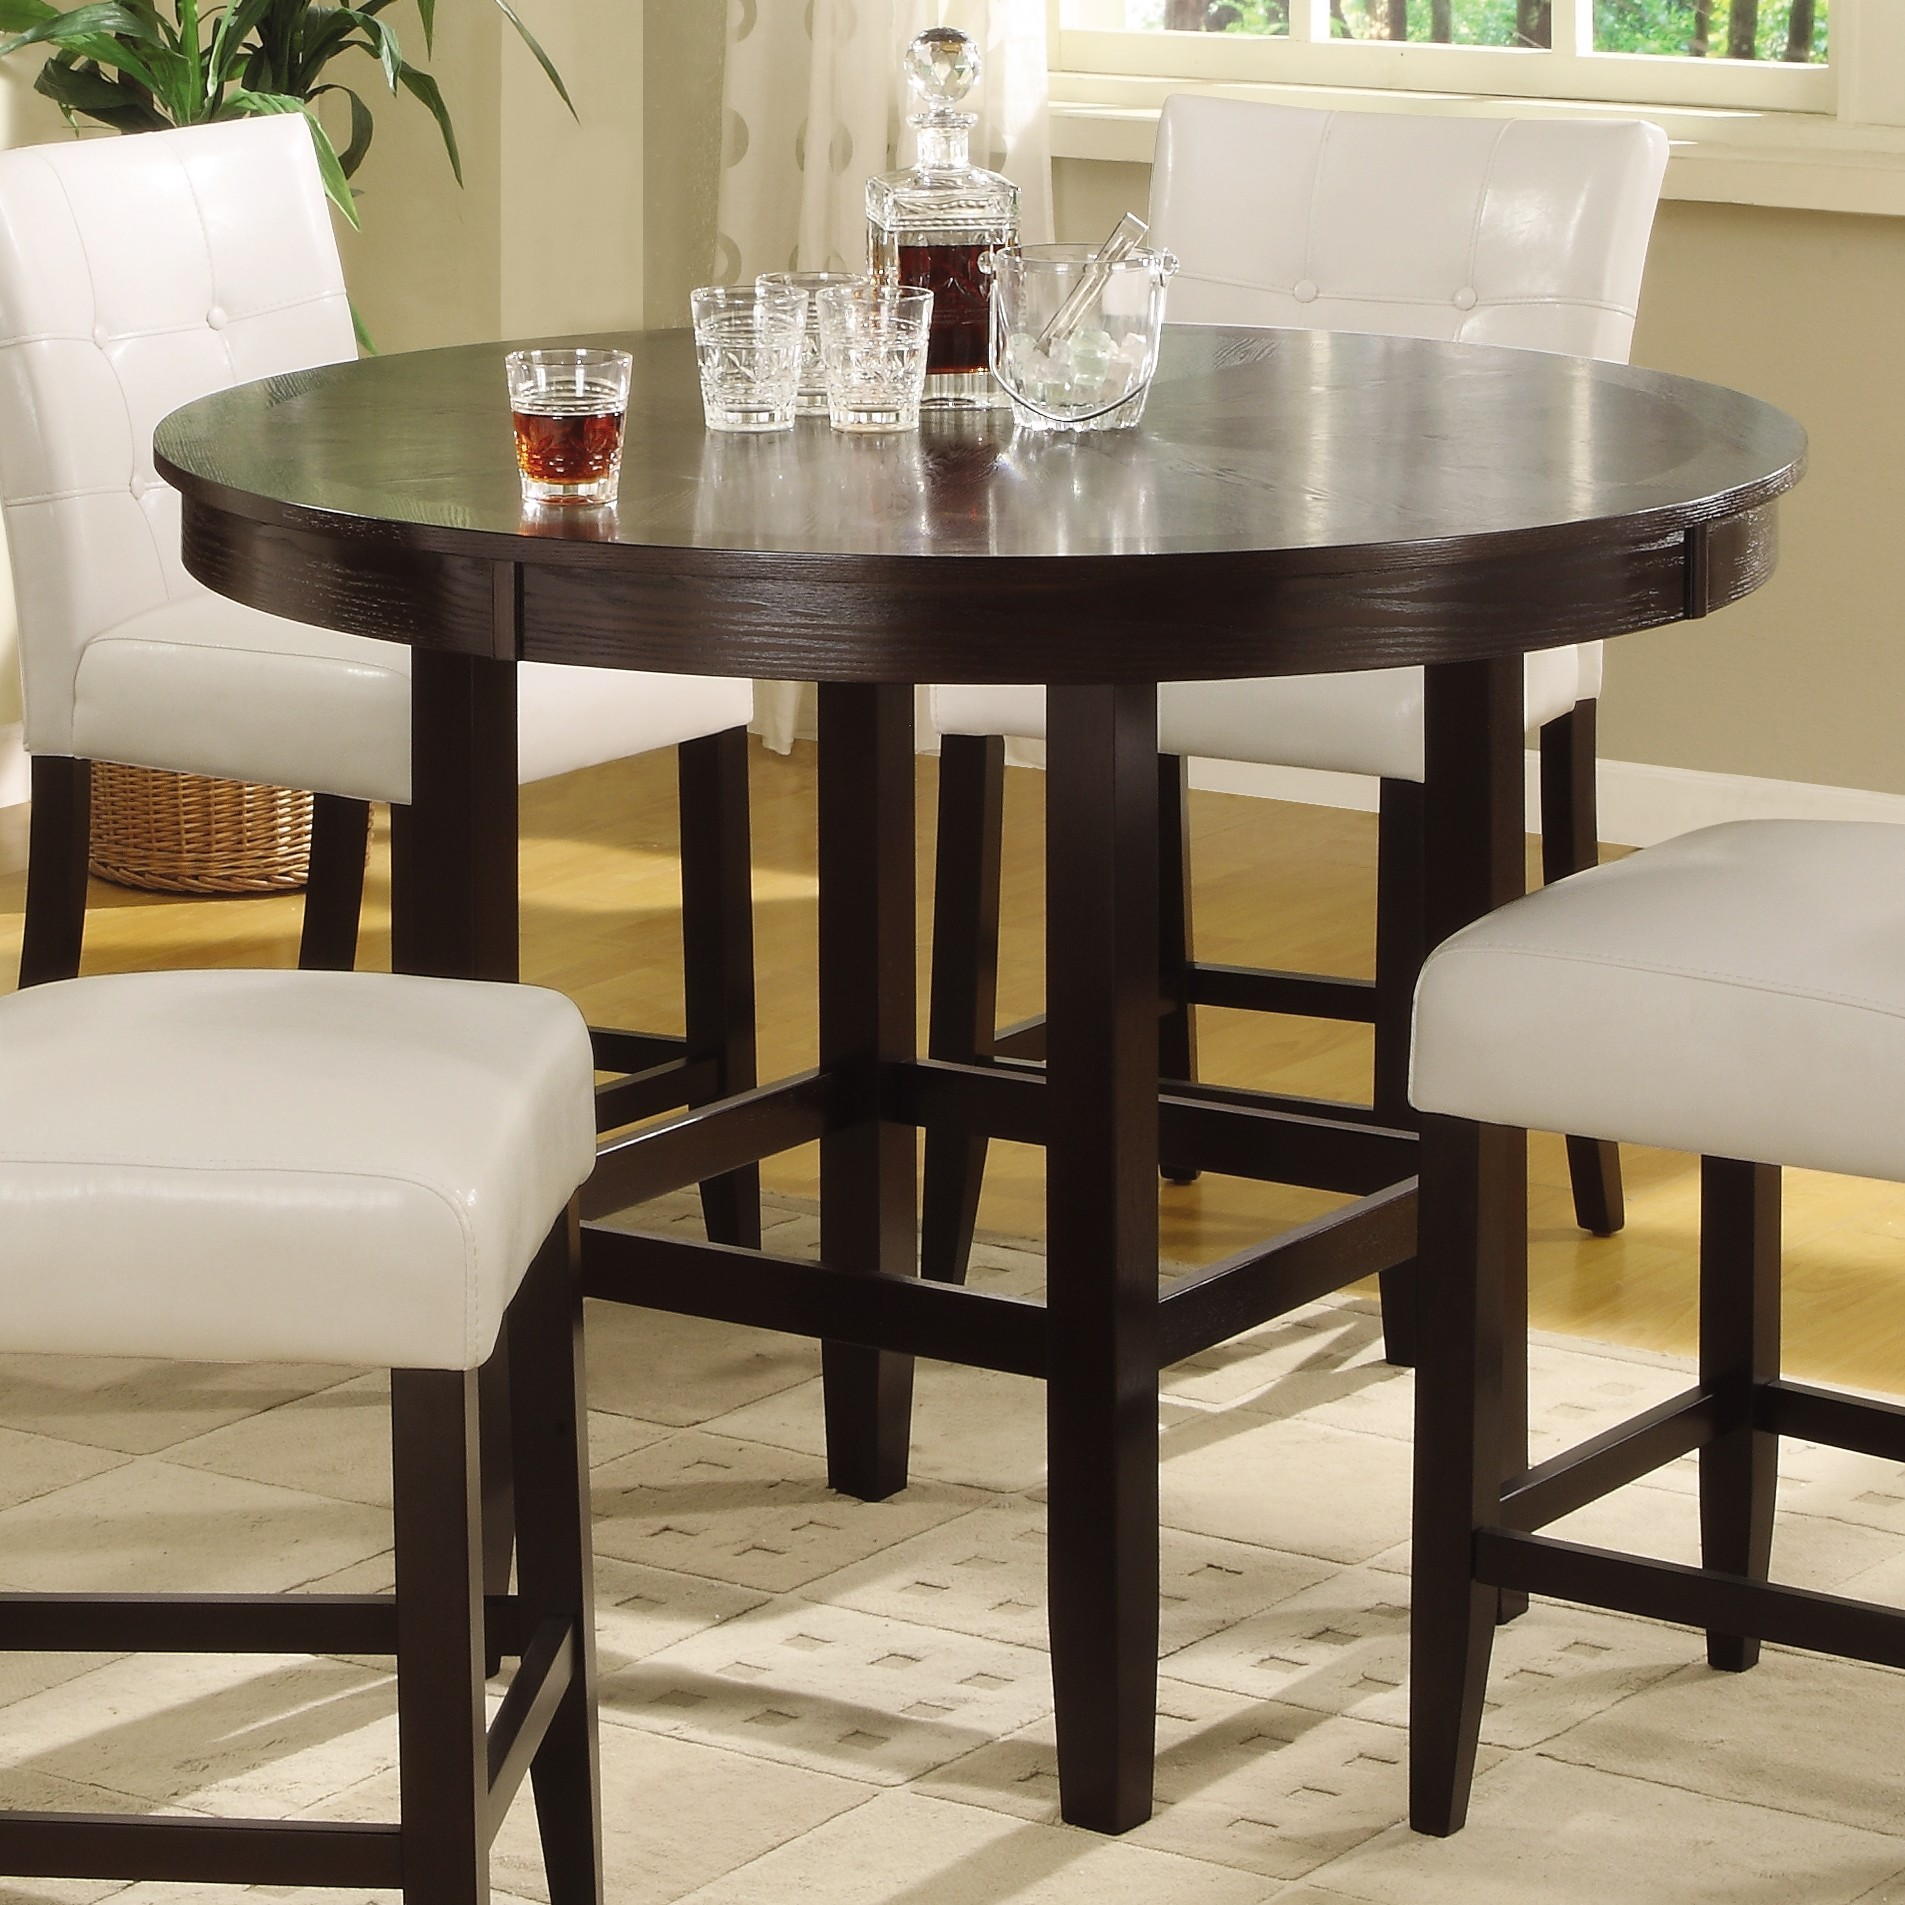 kitchen tables more high kitchen table round glass dining room table more views